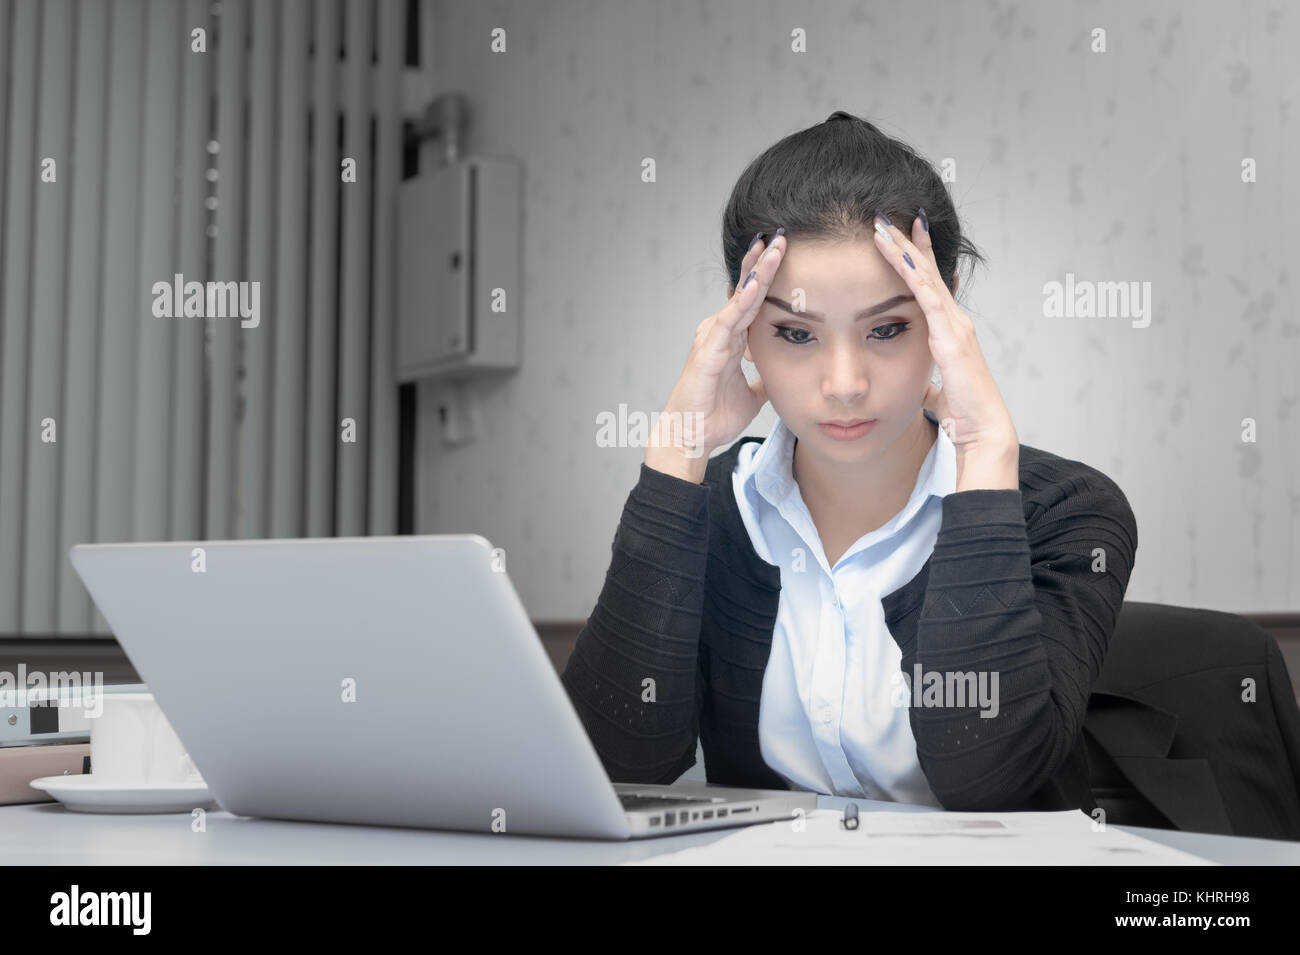 Exhausted asian business woman working at office desk with a laptop and touching her forehead, headache and stressful - Stock Image